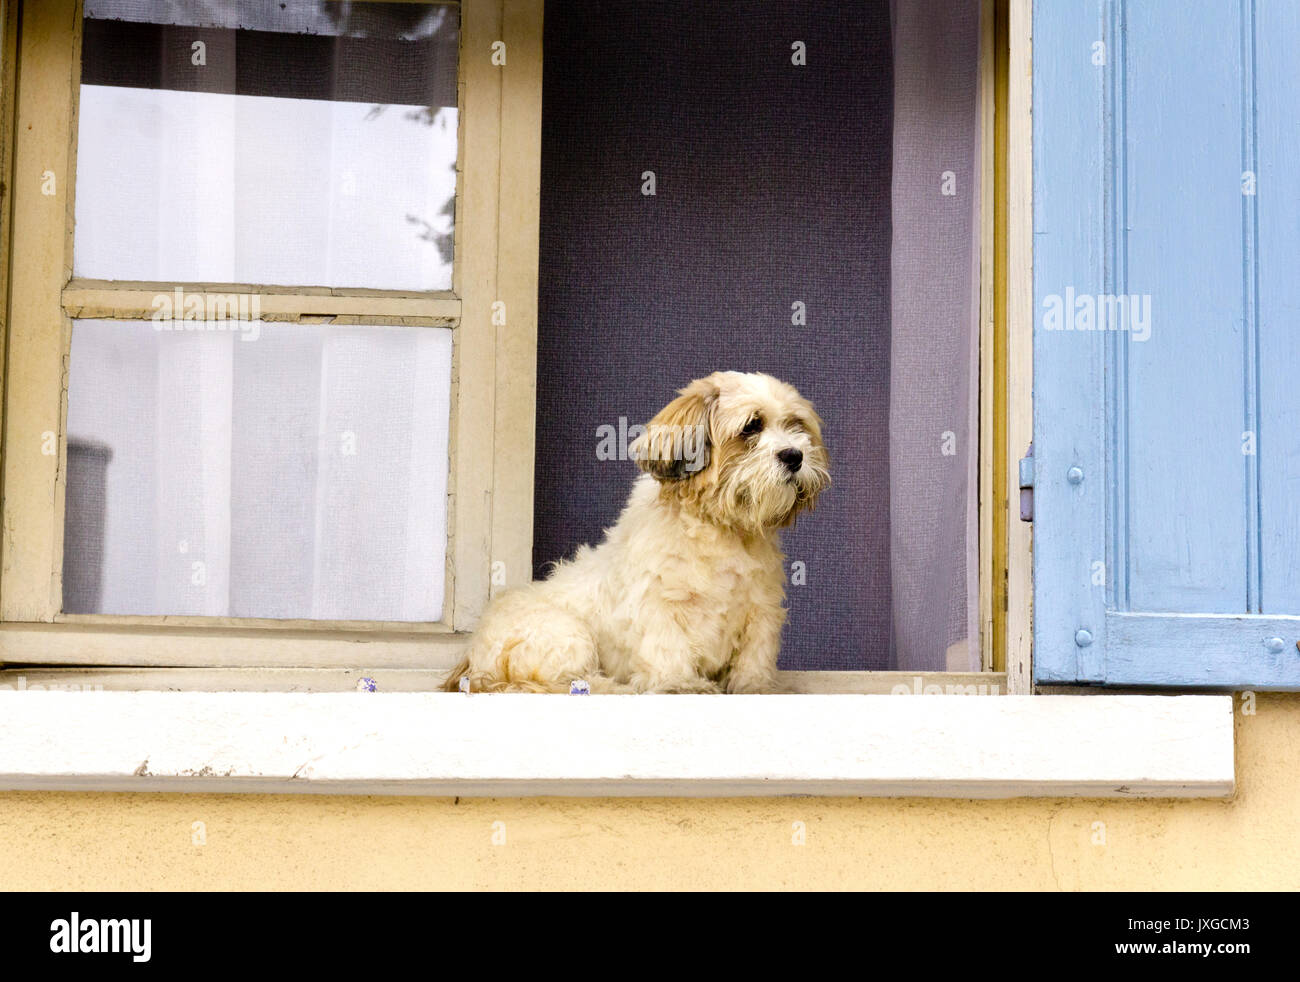 Maltese Terrier sitting on a window sill in Arles, France. Cream walls and blue shutters. - Stock Image